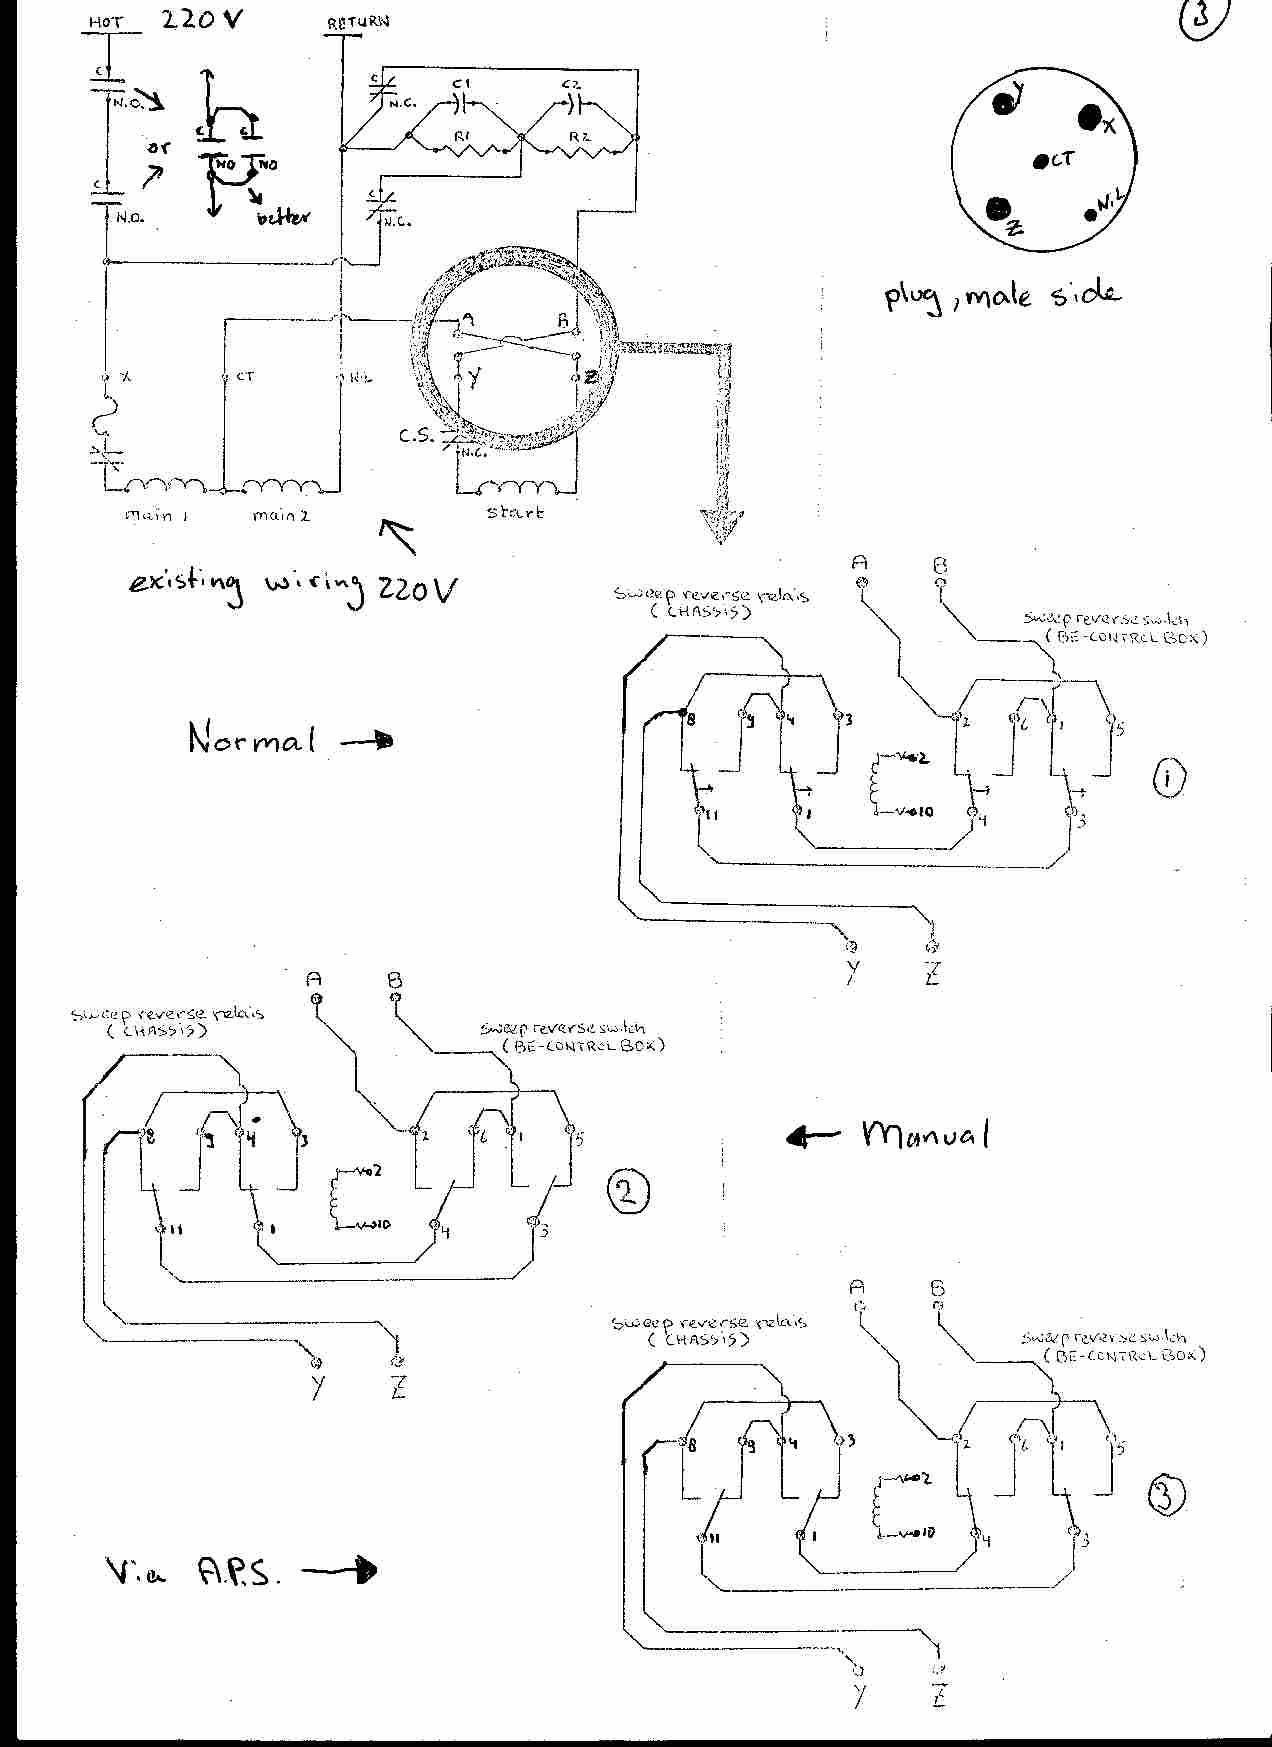 700r4 manual lockup switch wiring diagrams